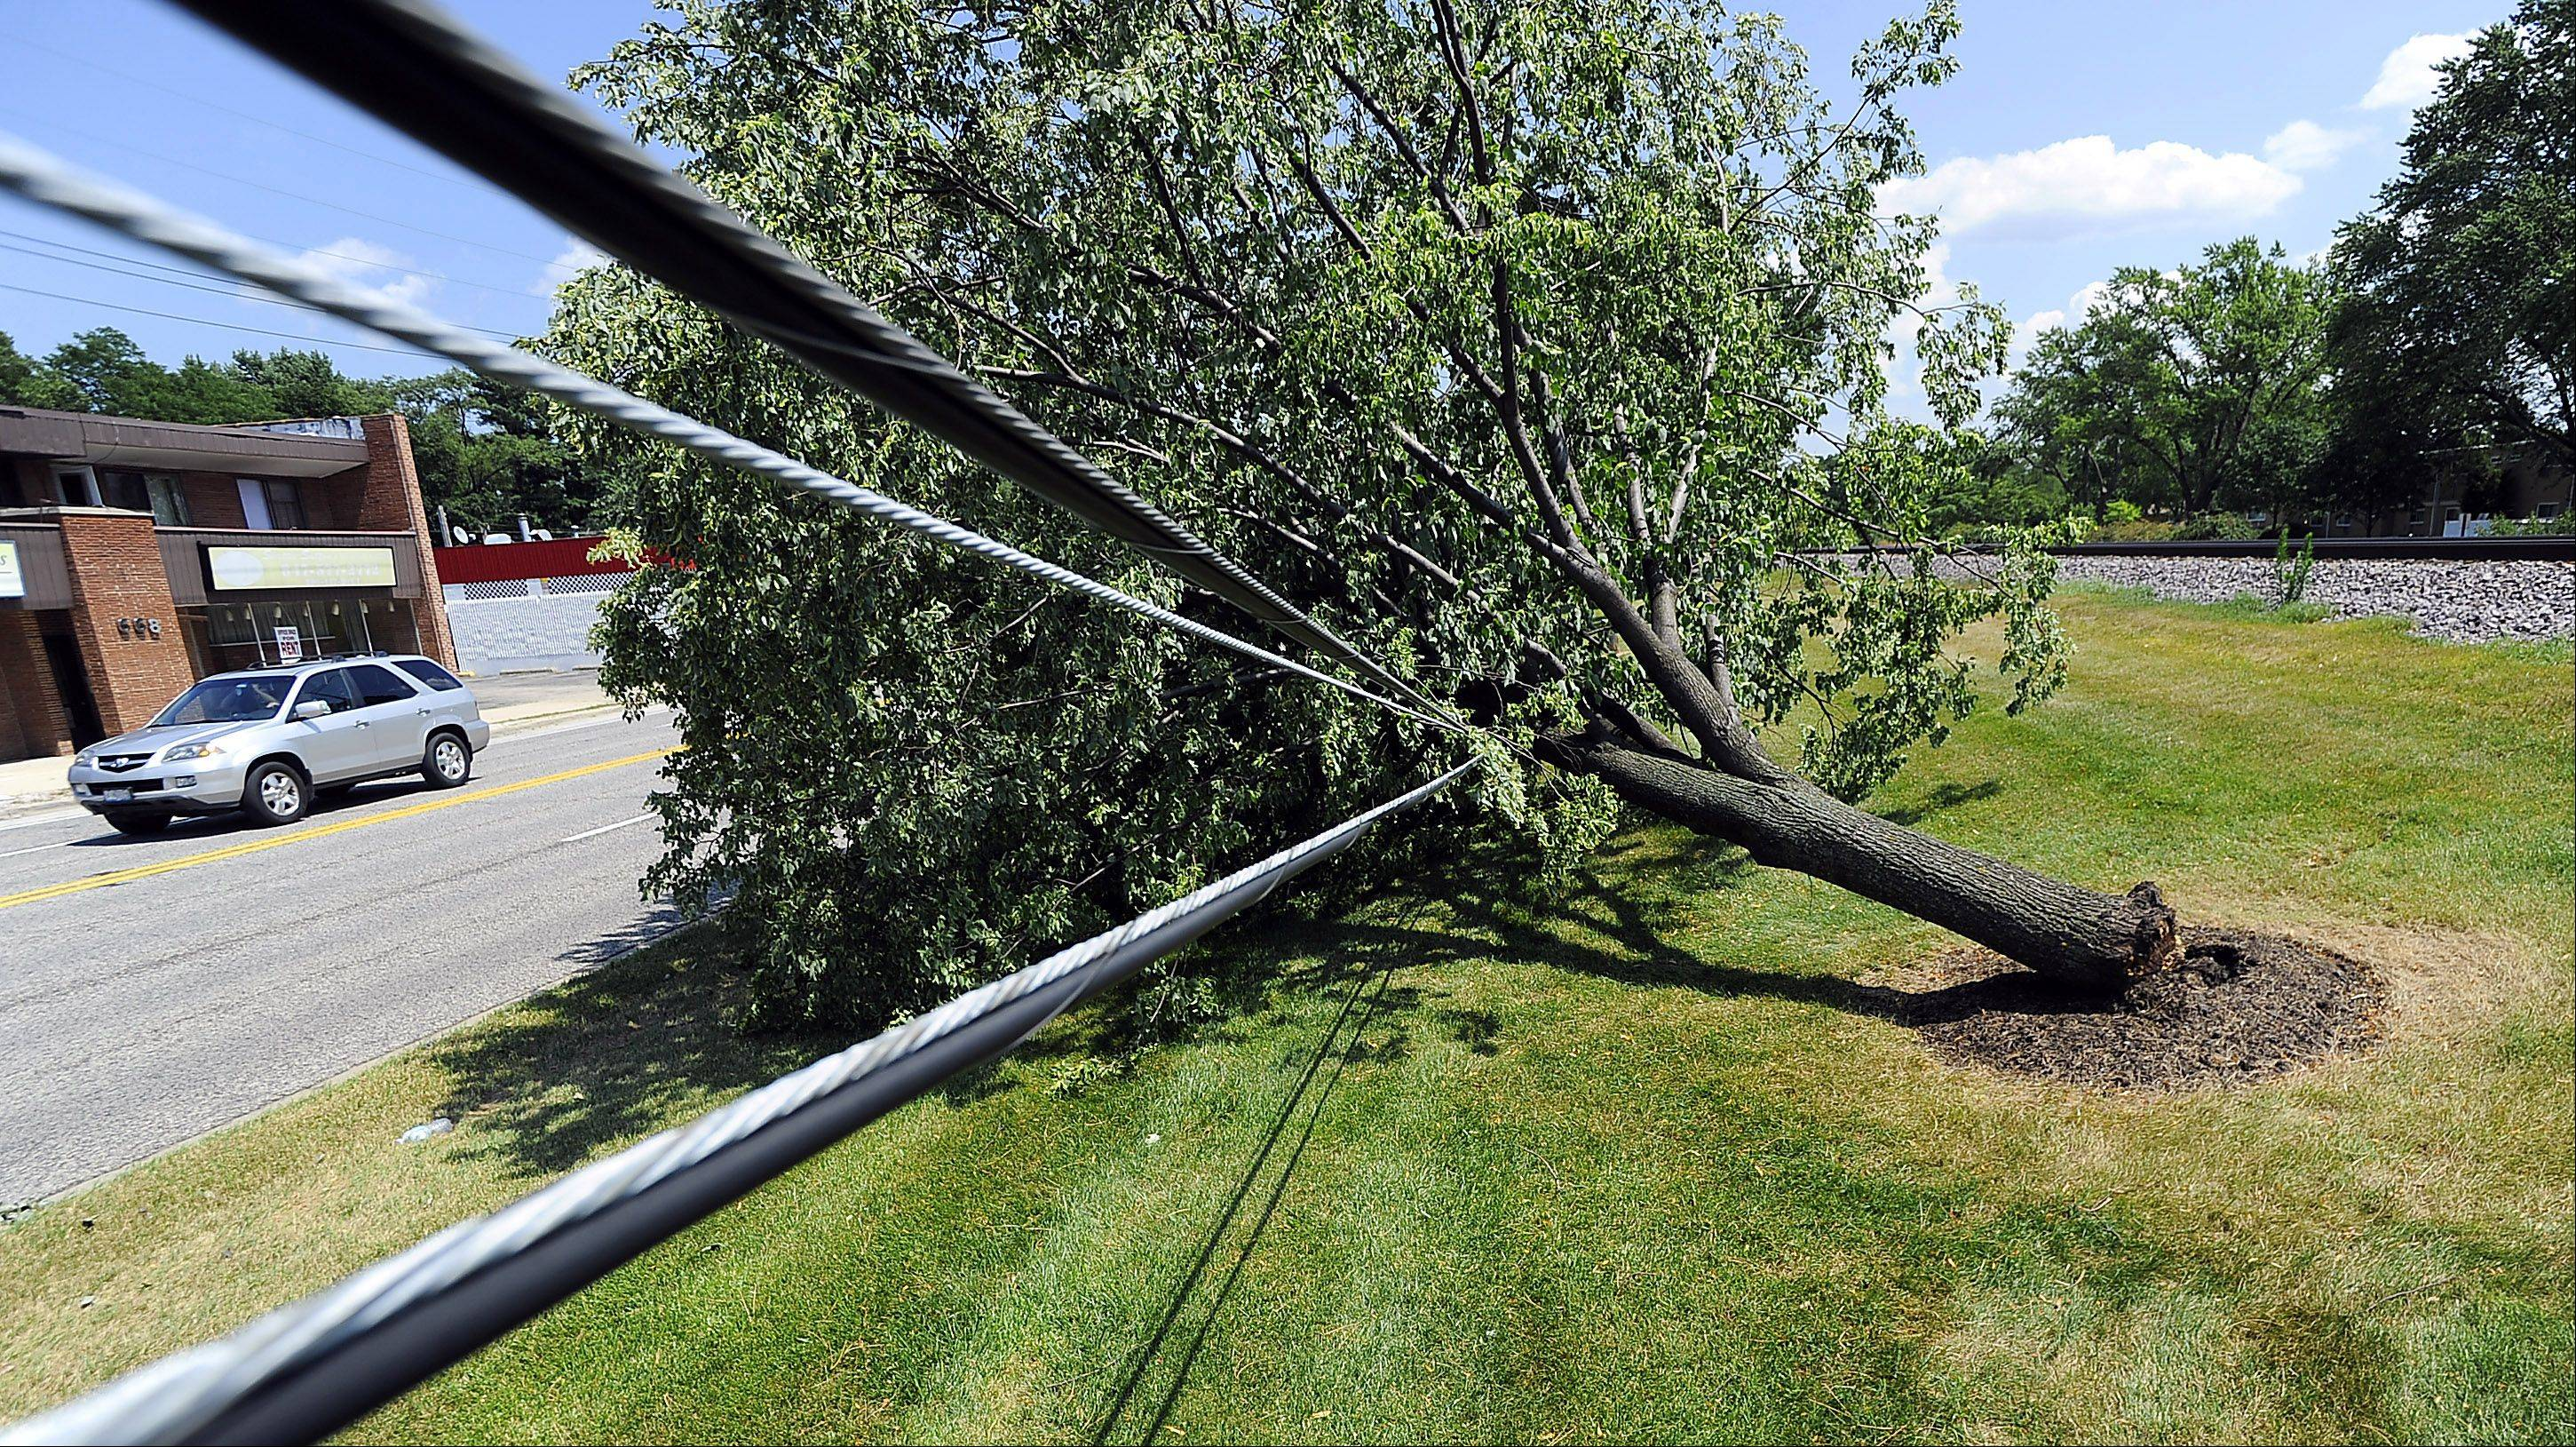 Nearly all Northwest suburban ComEd customers who lost power after Friday�s storms downed power lines across the region had their electricity restored by late Sunday morning, officials said.